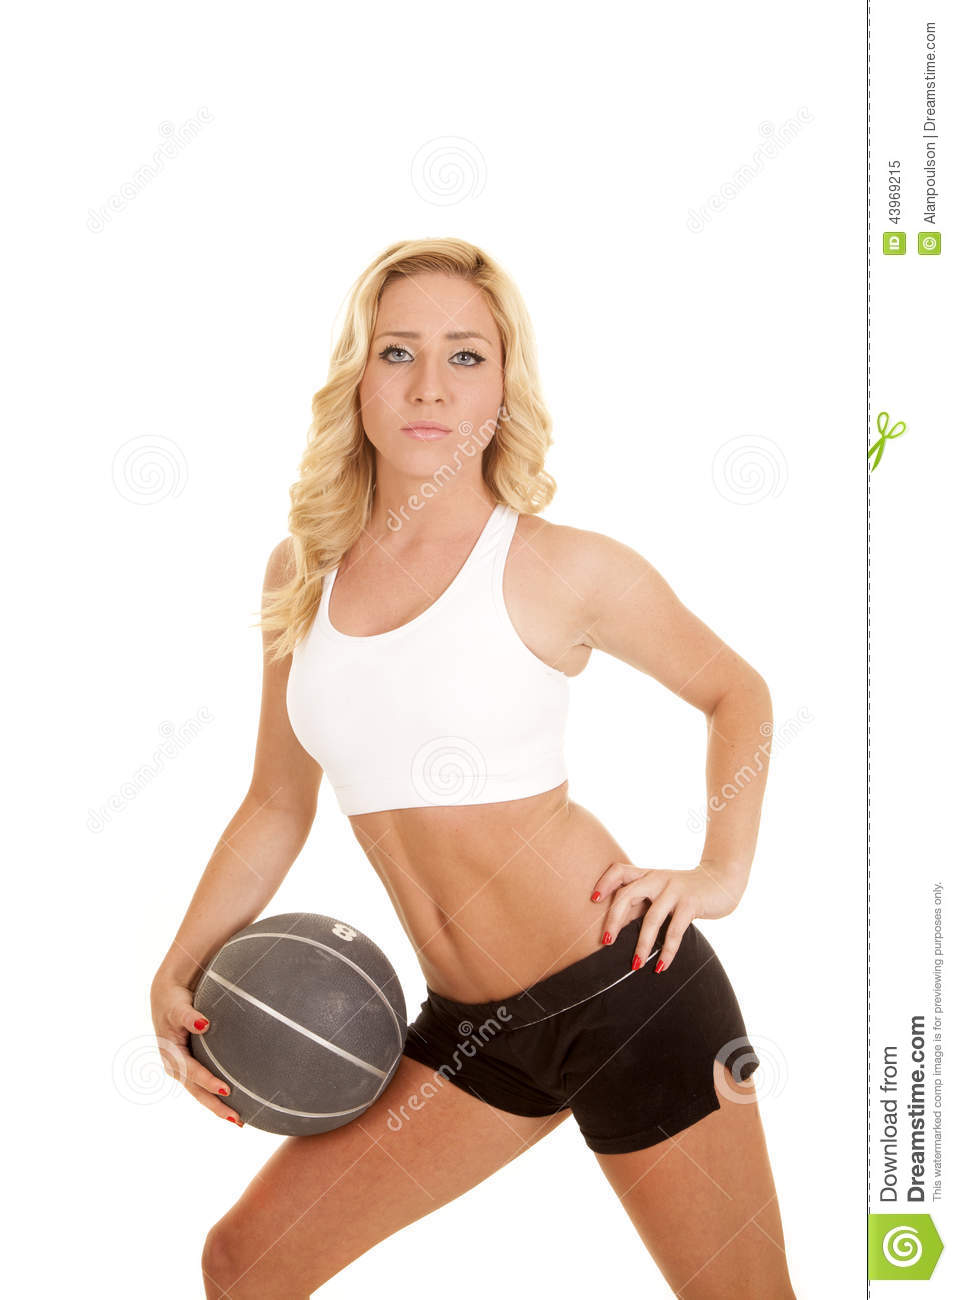 1f2972a5367be Woman Fitness White Sports Bra Ball On Leg Stock Image - Image of ...